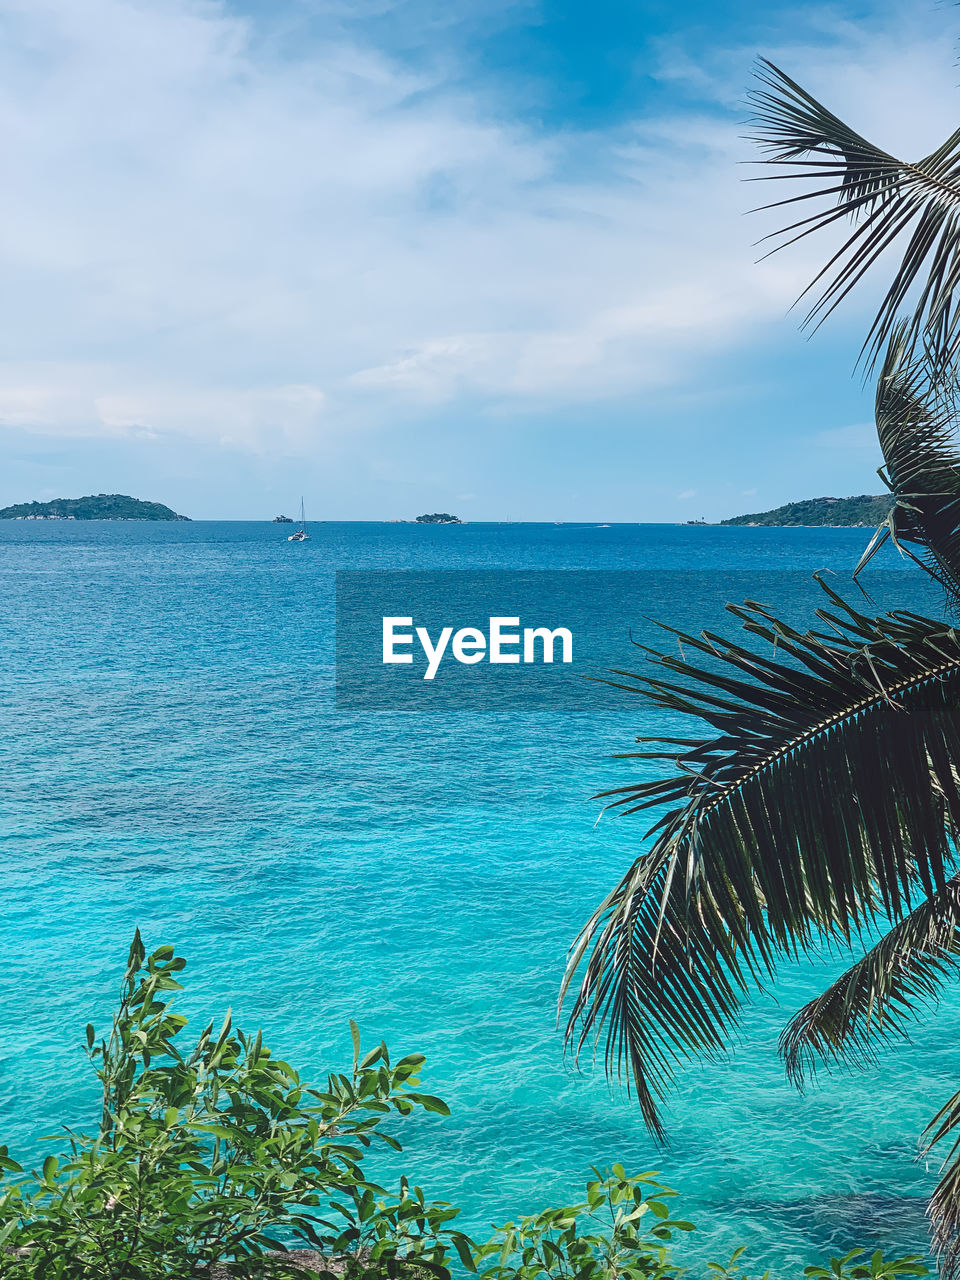 water, sea, sky, beauty in nature, scenics - nature, palm tree, tropical climate, tranquility, tranquil scene, tree, cloud - sky, plant, nature, horizon over water, no people, beach, land, horizon, day, outdoors, palm leaf, coconut palm tree, turquoise colored